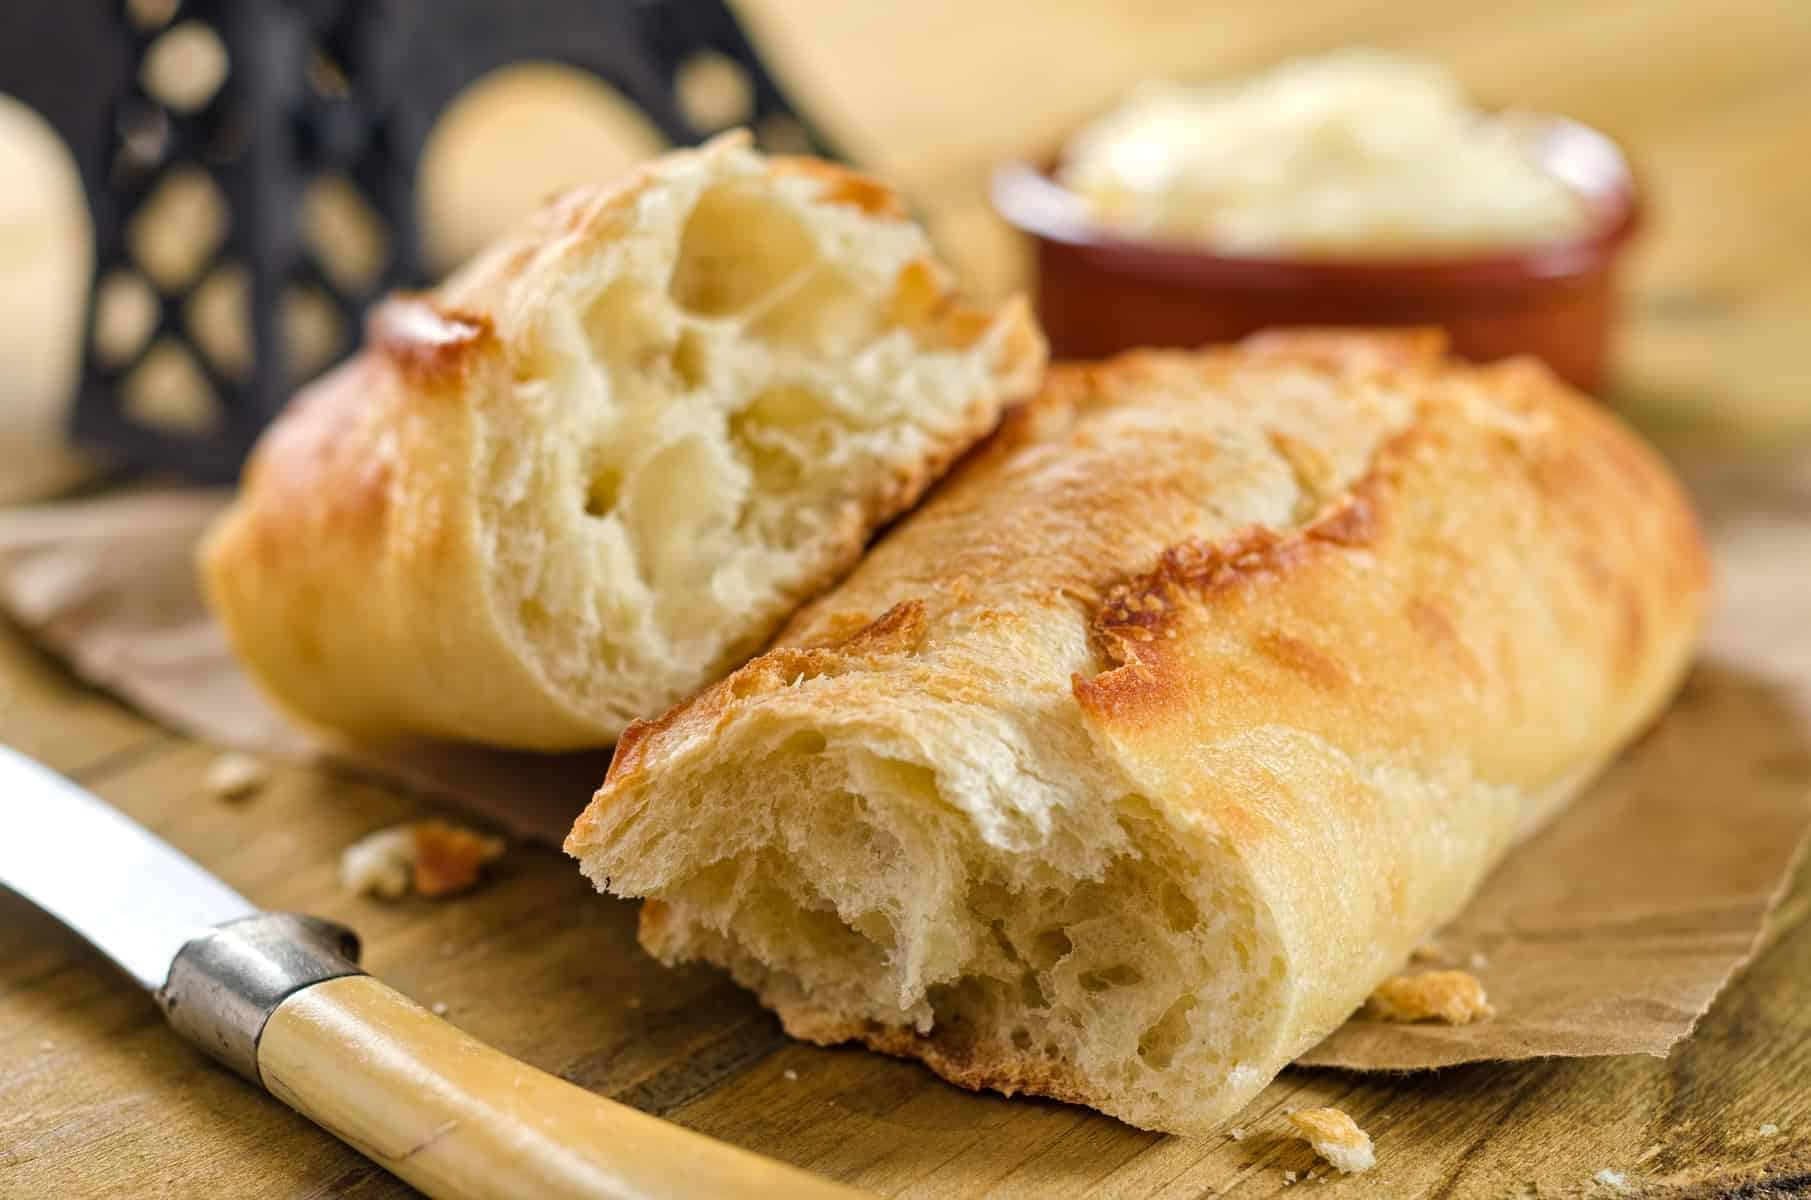 Crisp and chewy french bread baguette with butter.